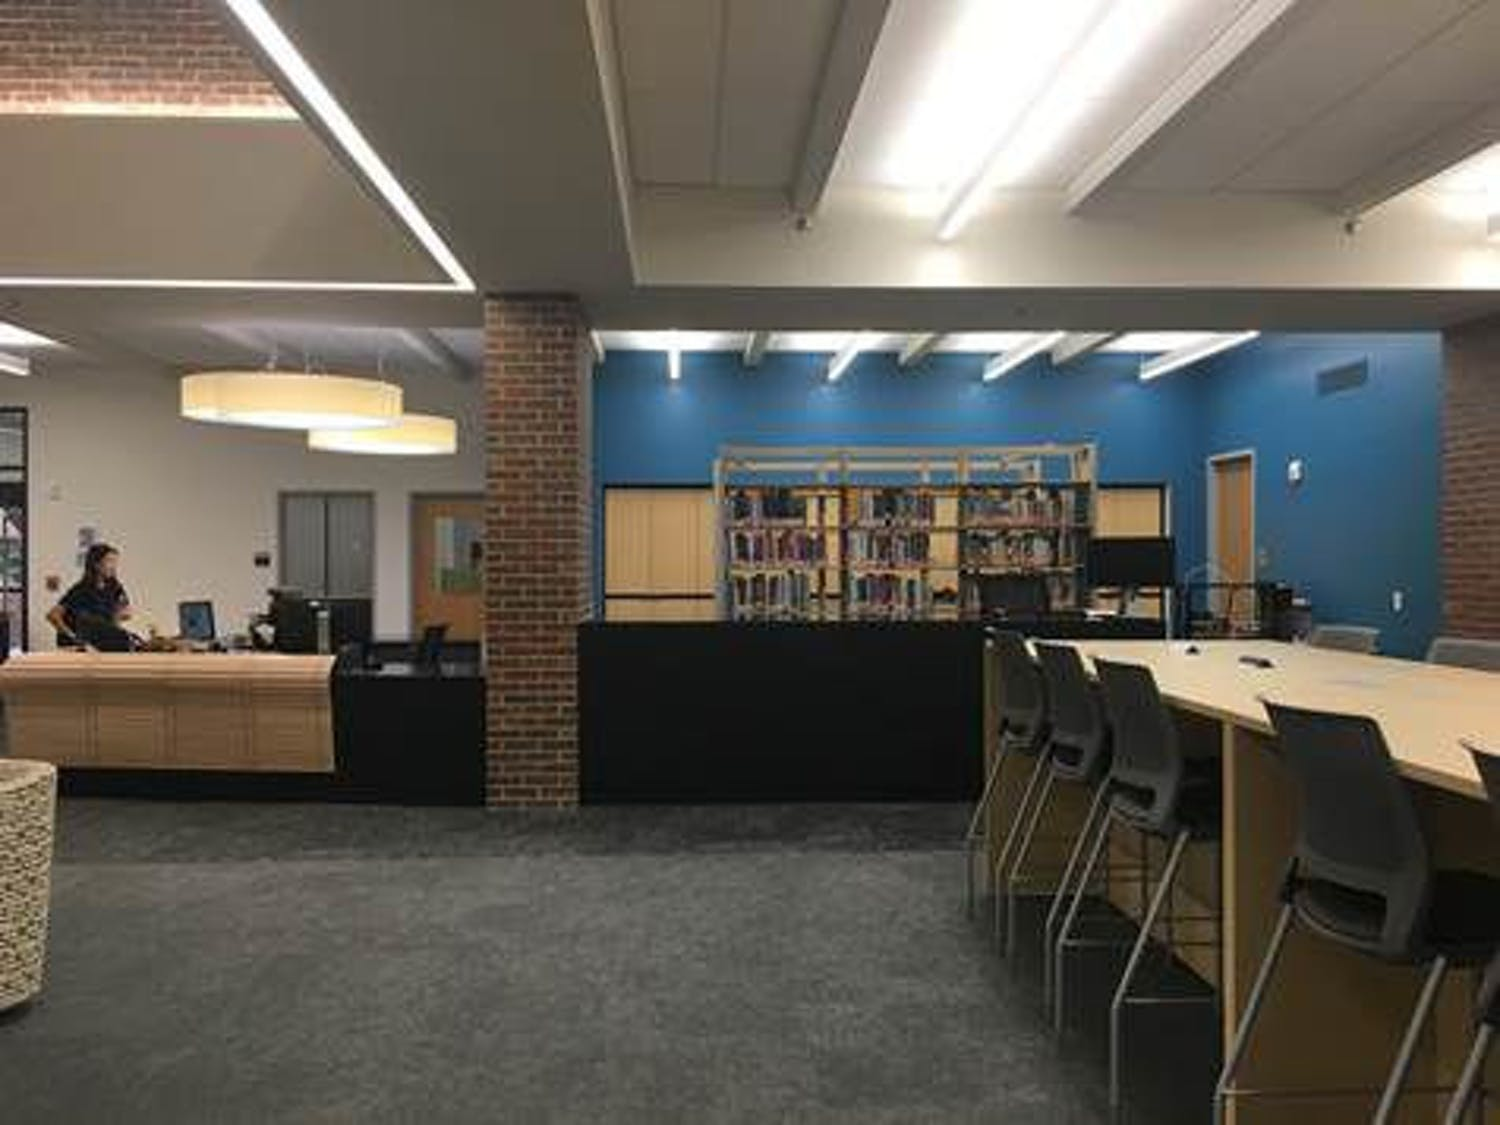 The UF Education Library's circulation desk after the renovation